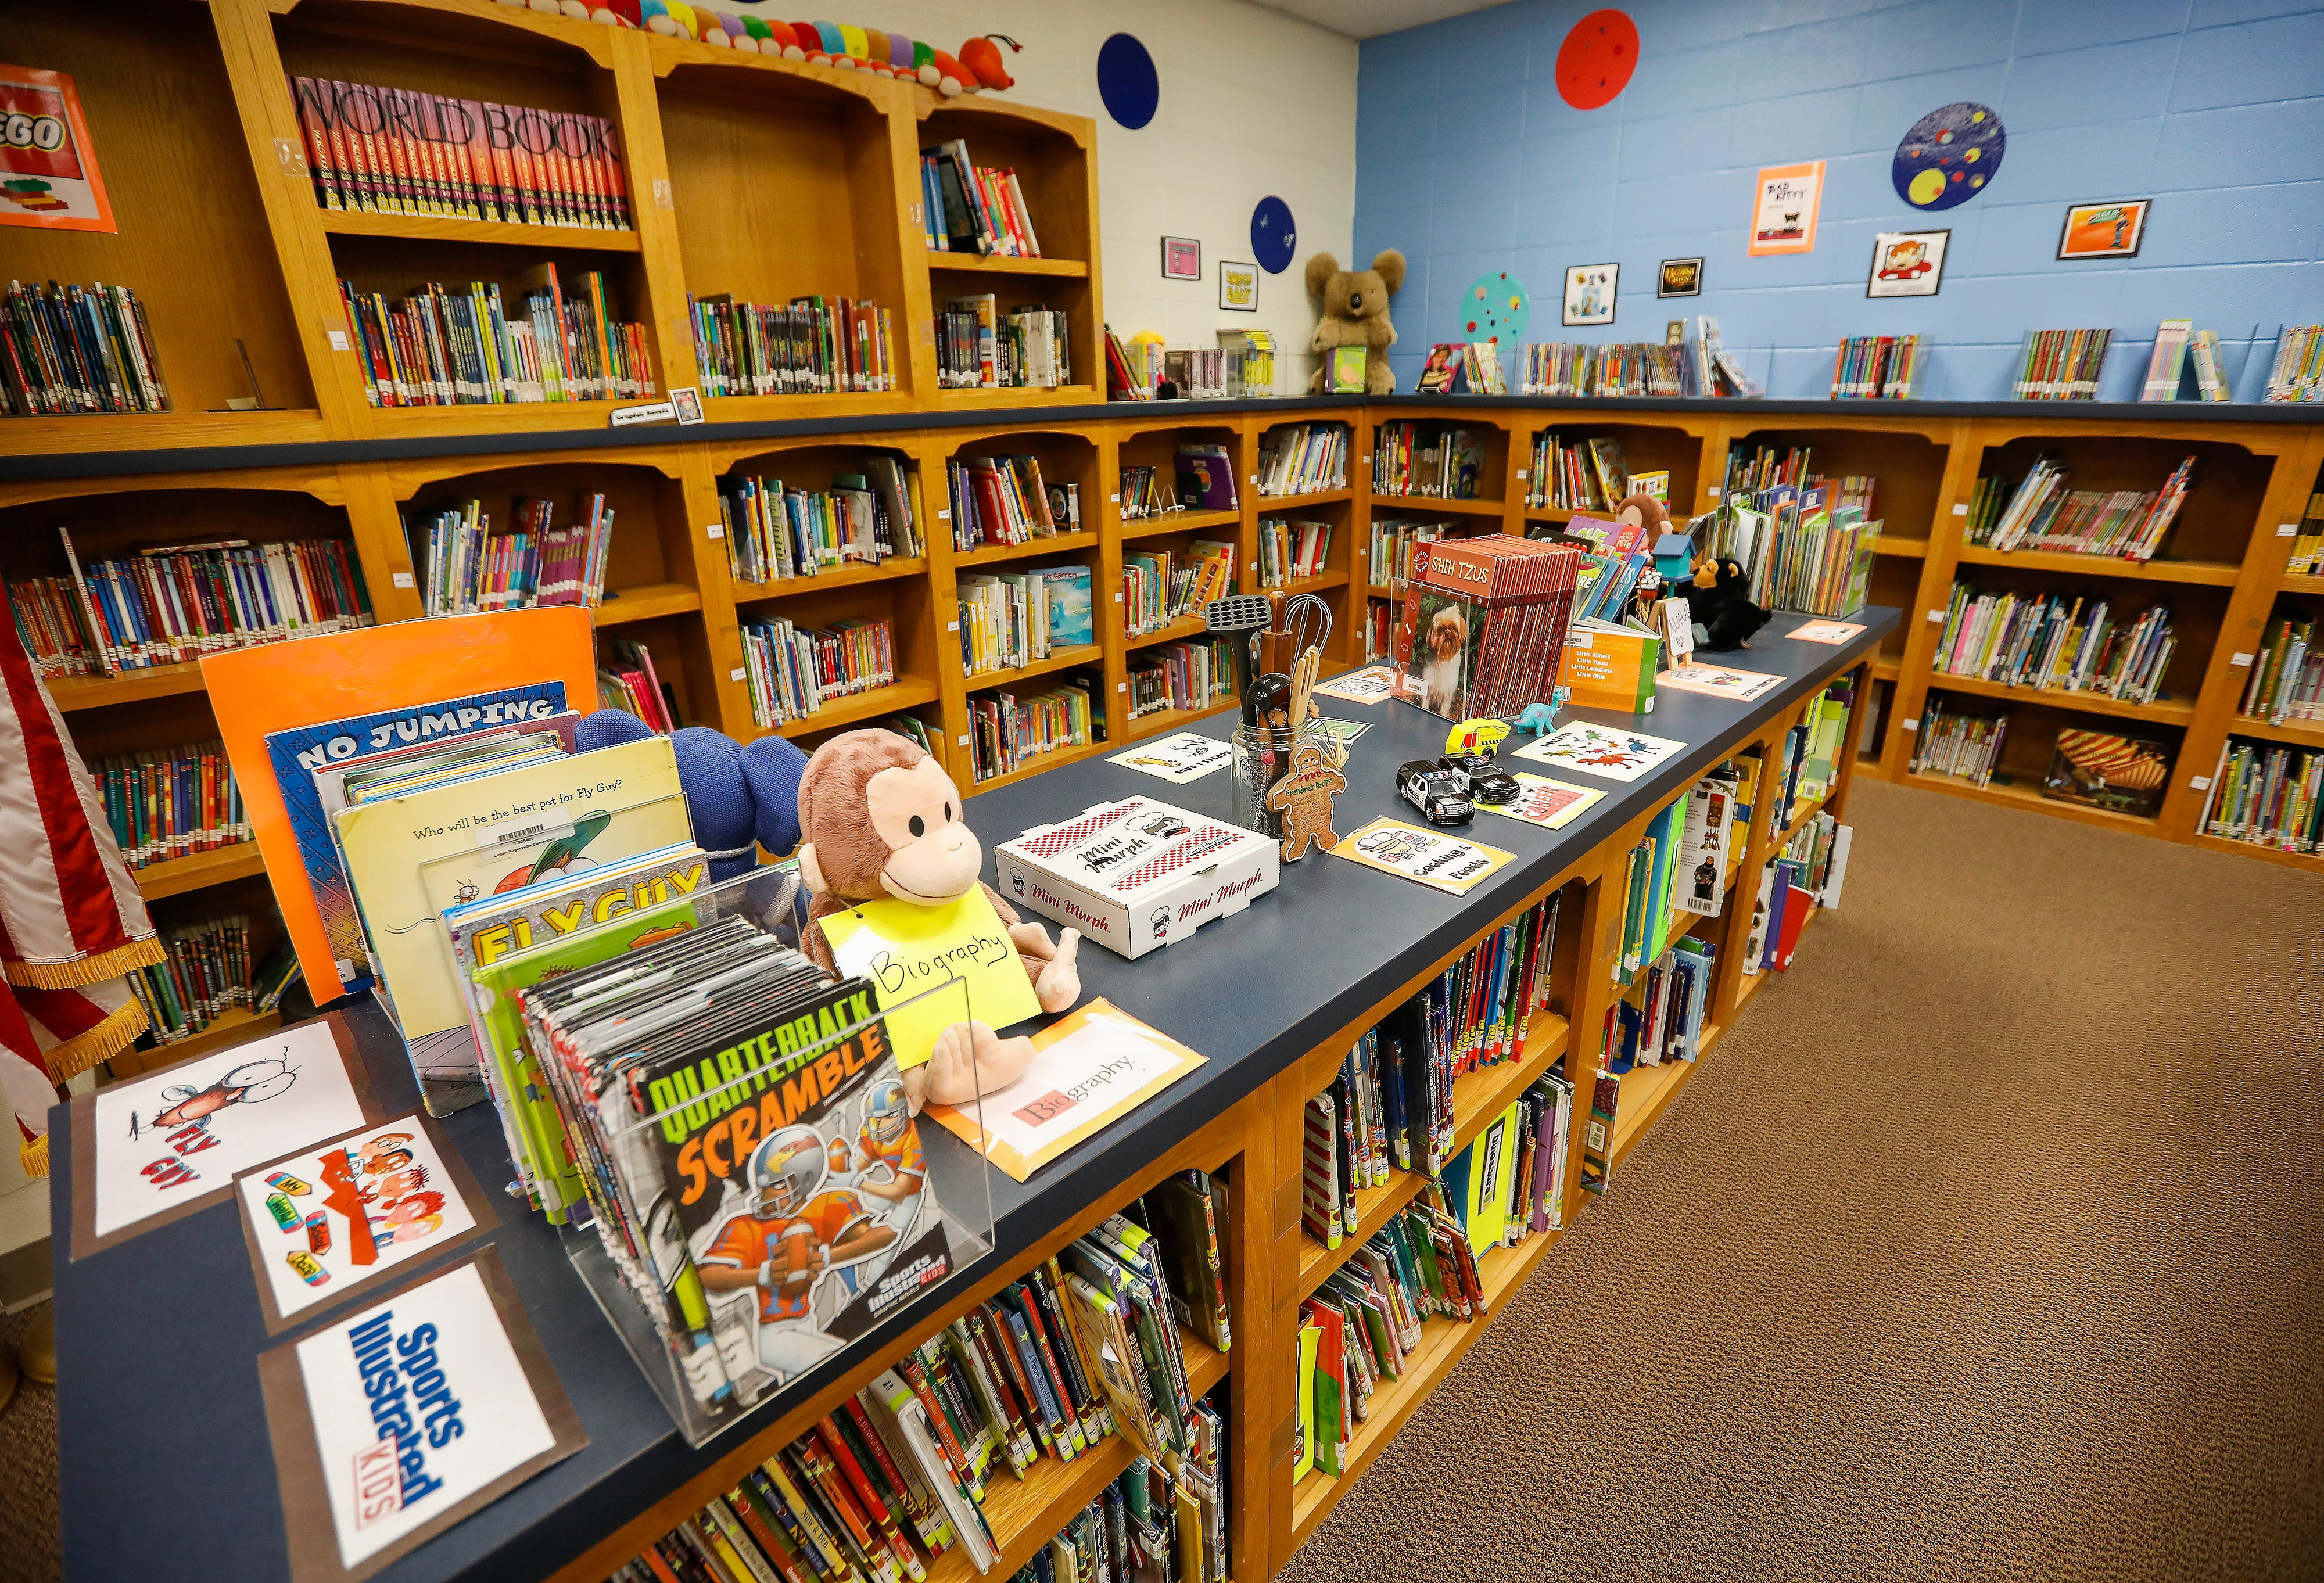 The library at Logan Elementary School will be relocated to a new, larger space and the current library will be turned into a classroom if the April 2 bond and levy issues pass.